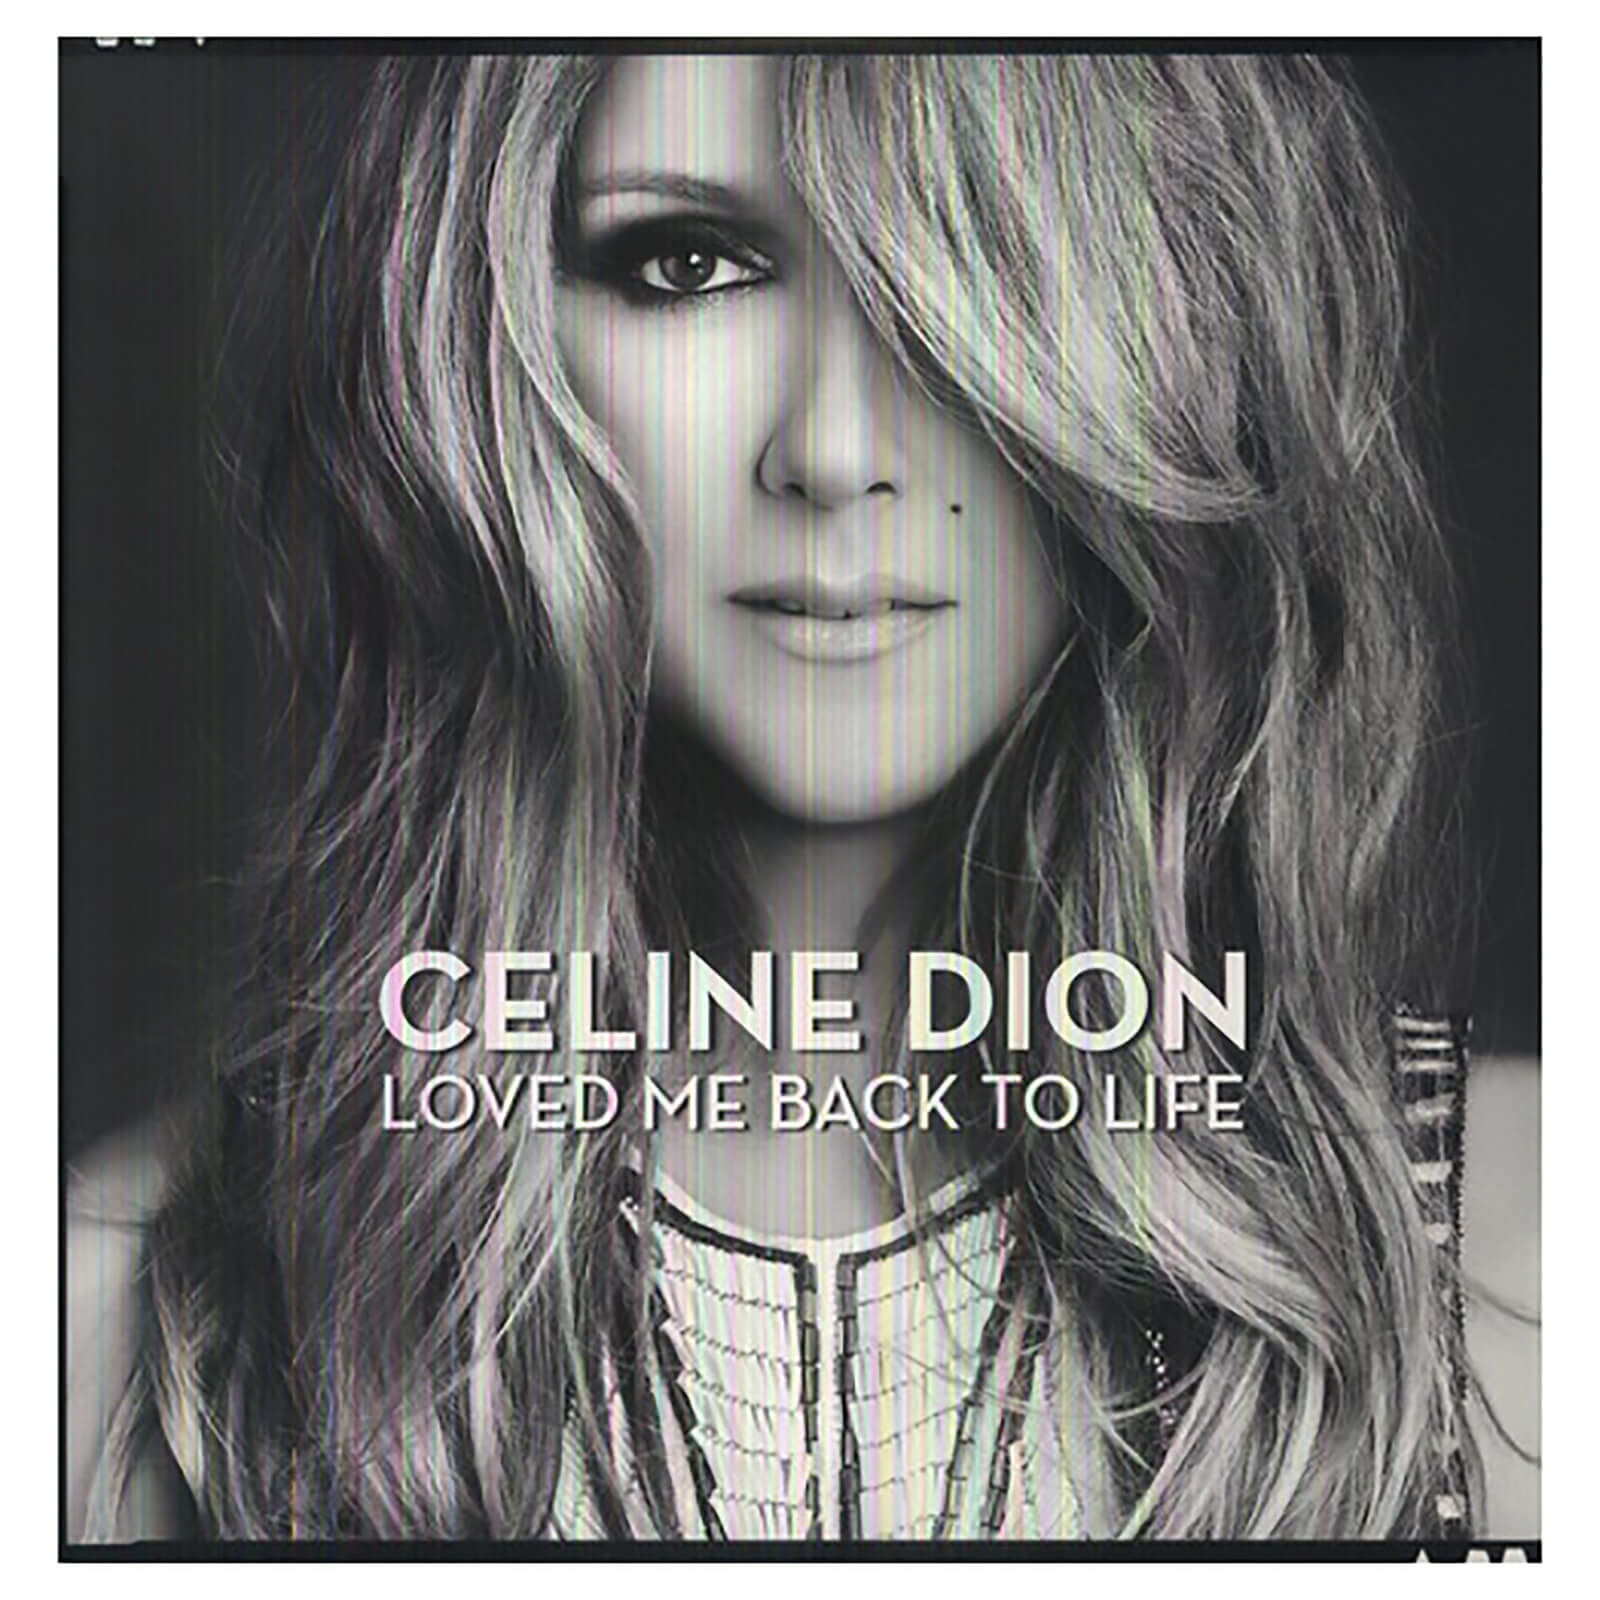 Celine Dion - Loved Me Back To Life - Vinyl